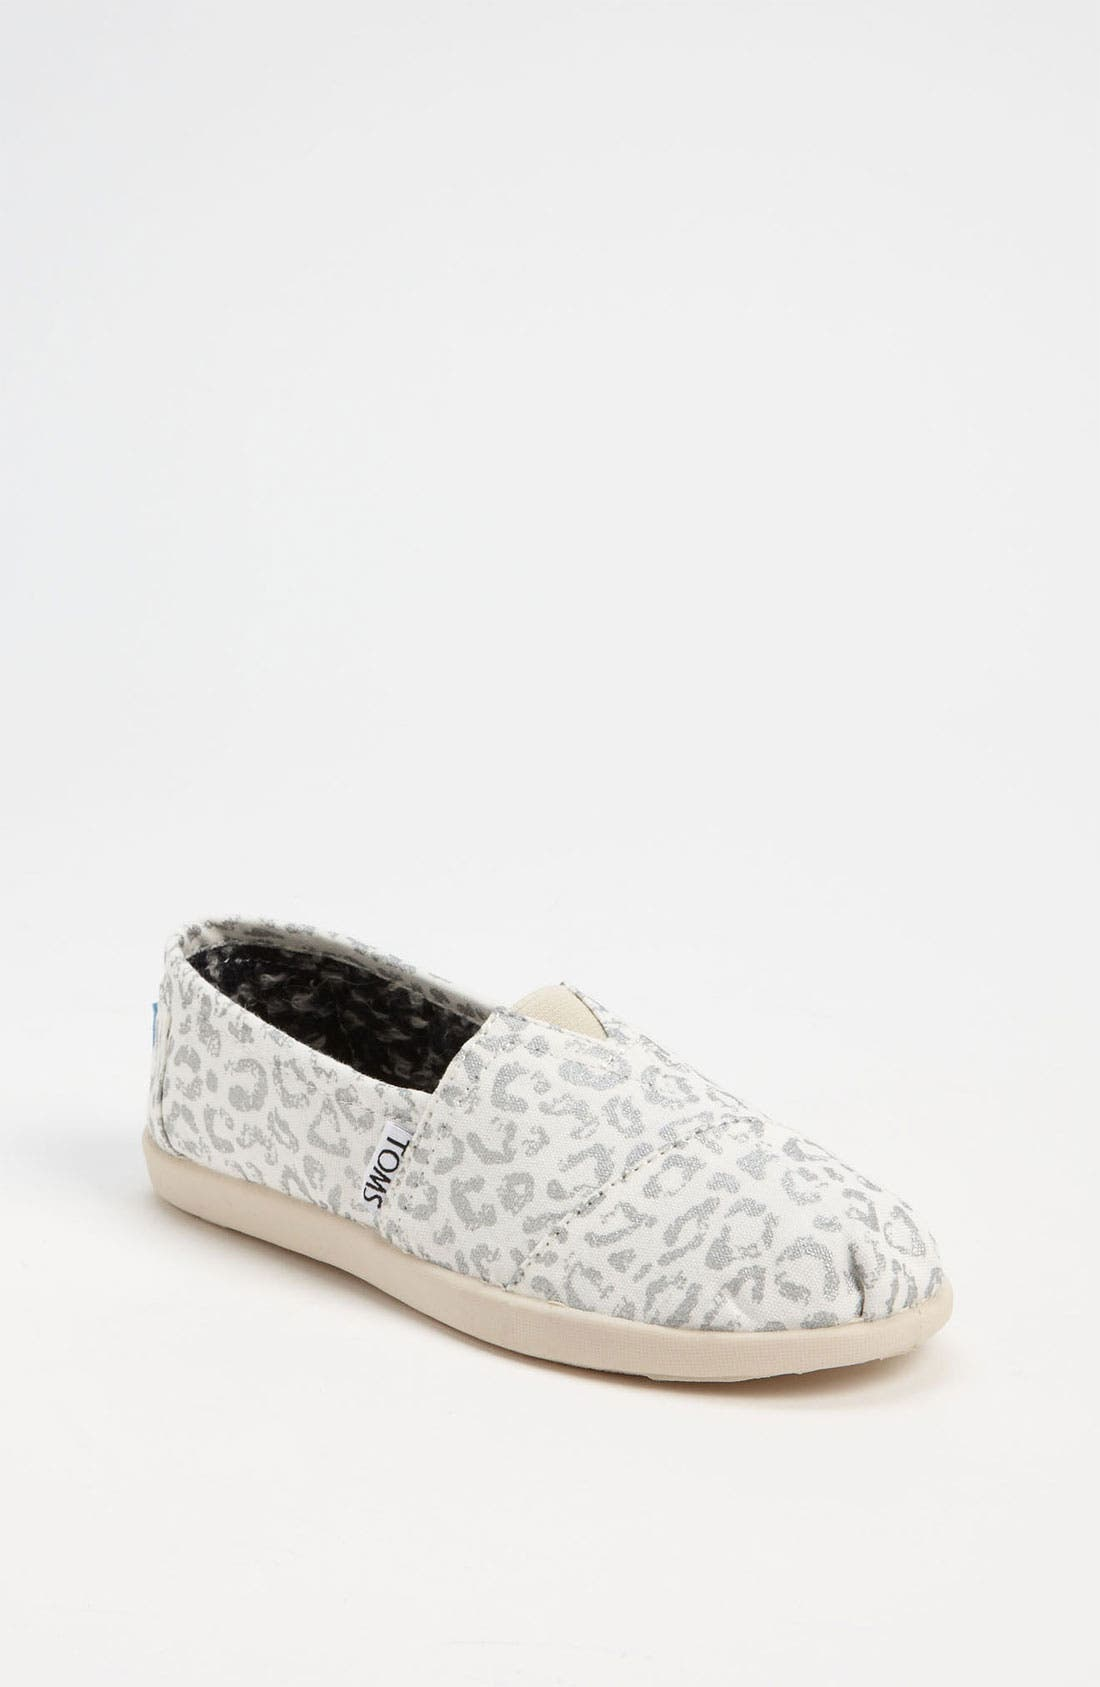 Alternate Image 1 Selected - TOMS 'Classic Youth - Earthwise Leopard' Slip-On (Toddler, Little Kid, Big Kid)